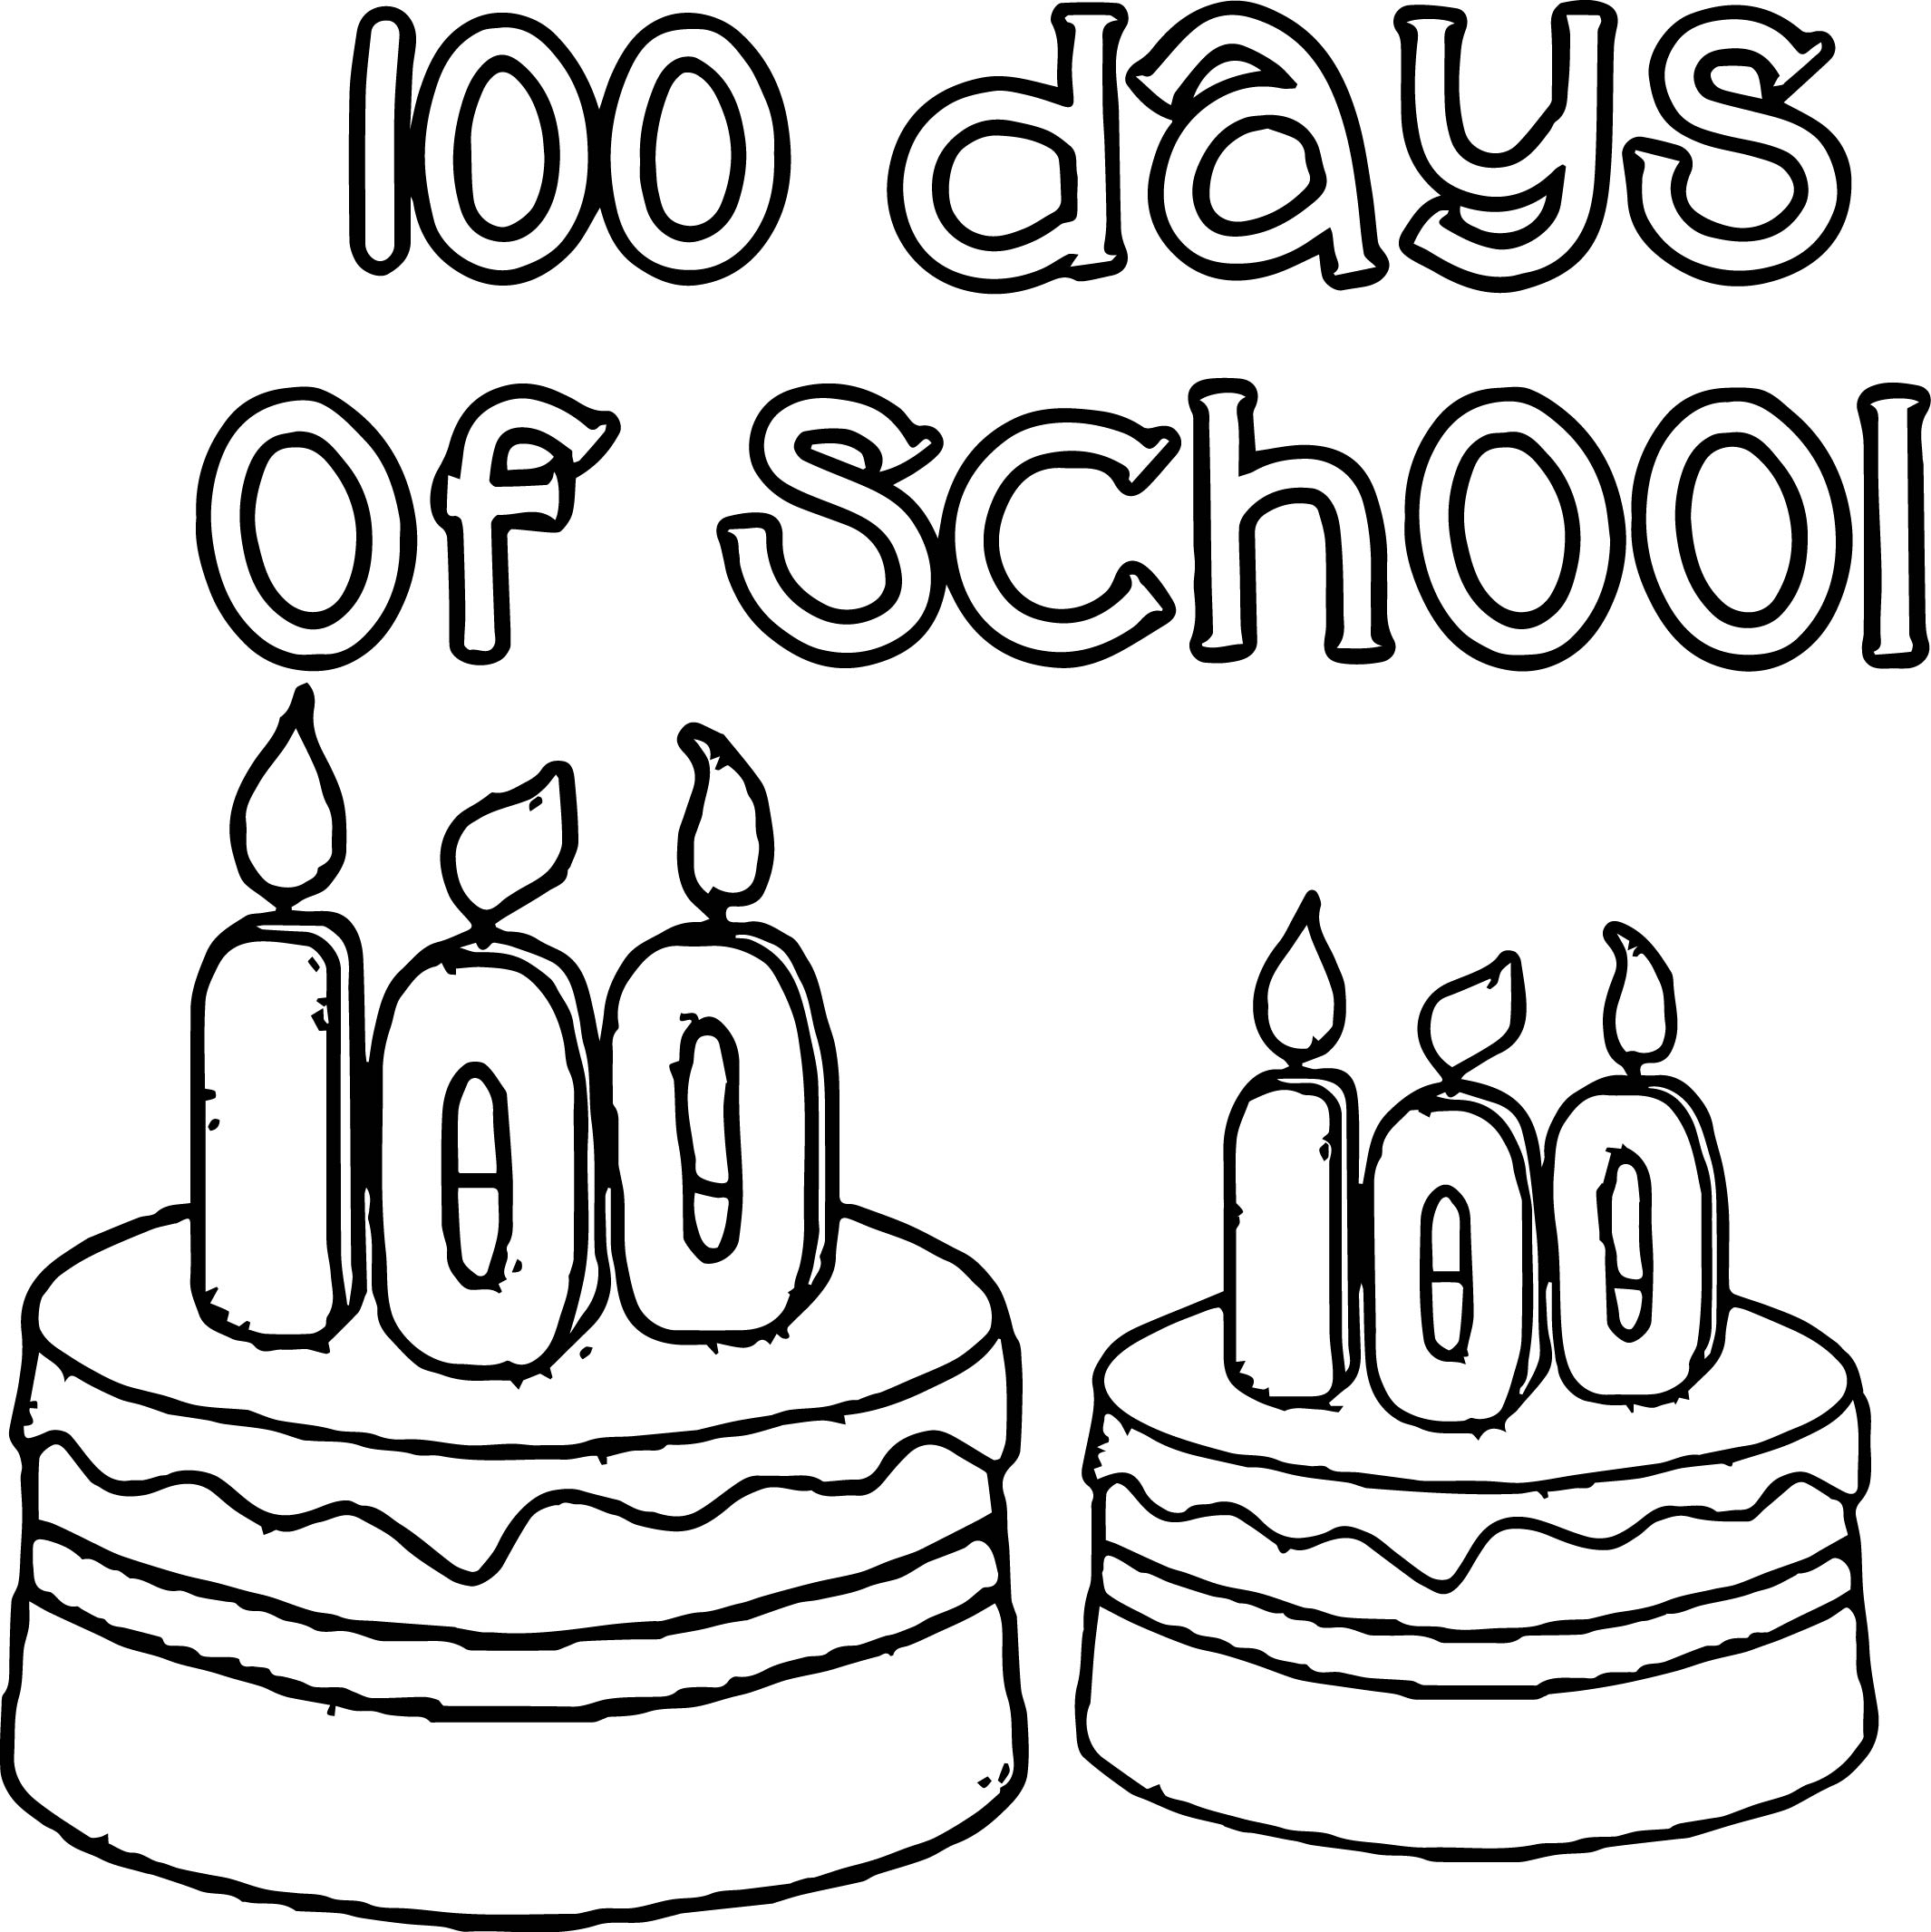 2130x2131 100 Days Of School Birthday Coloring Page Wecoloringpage